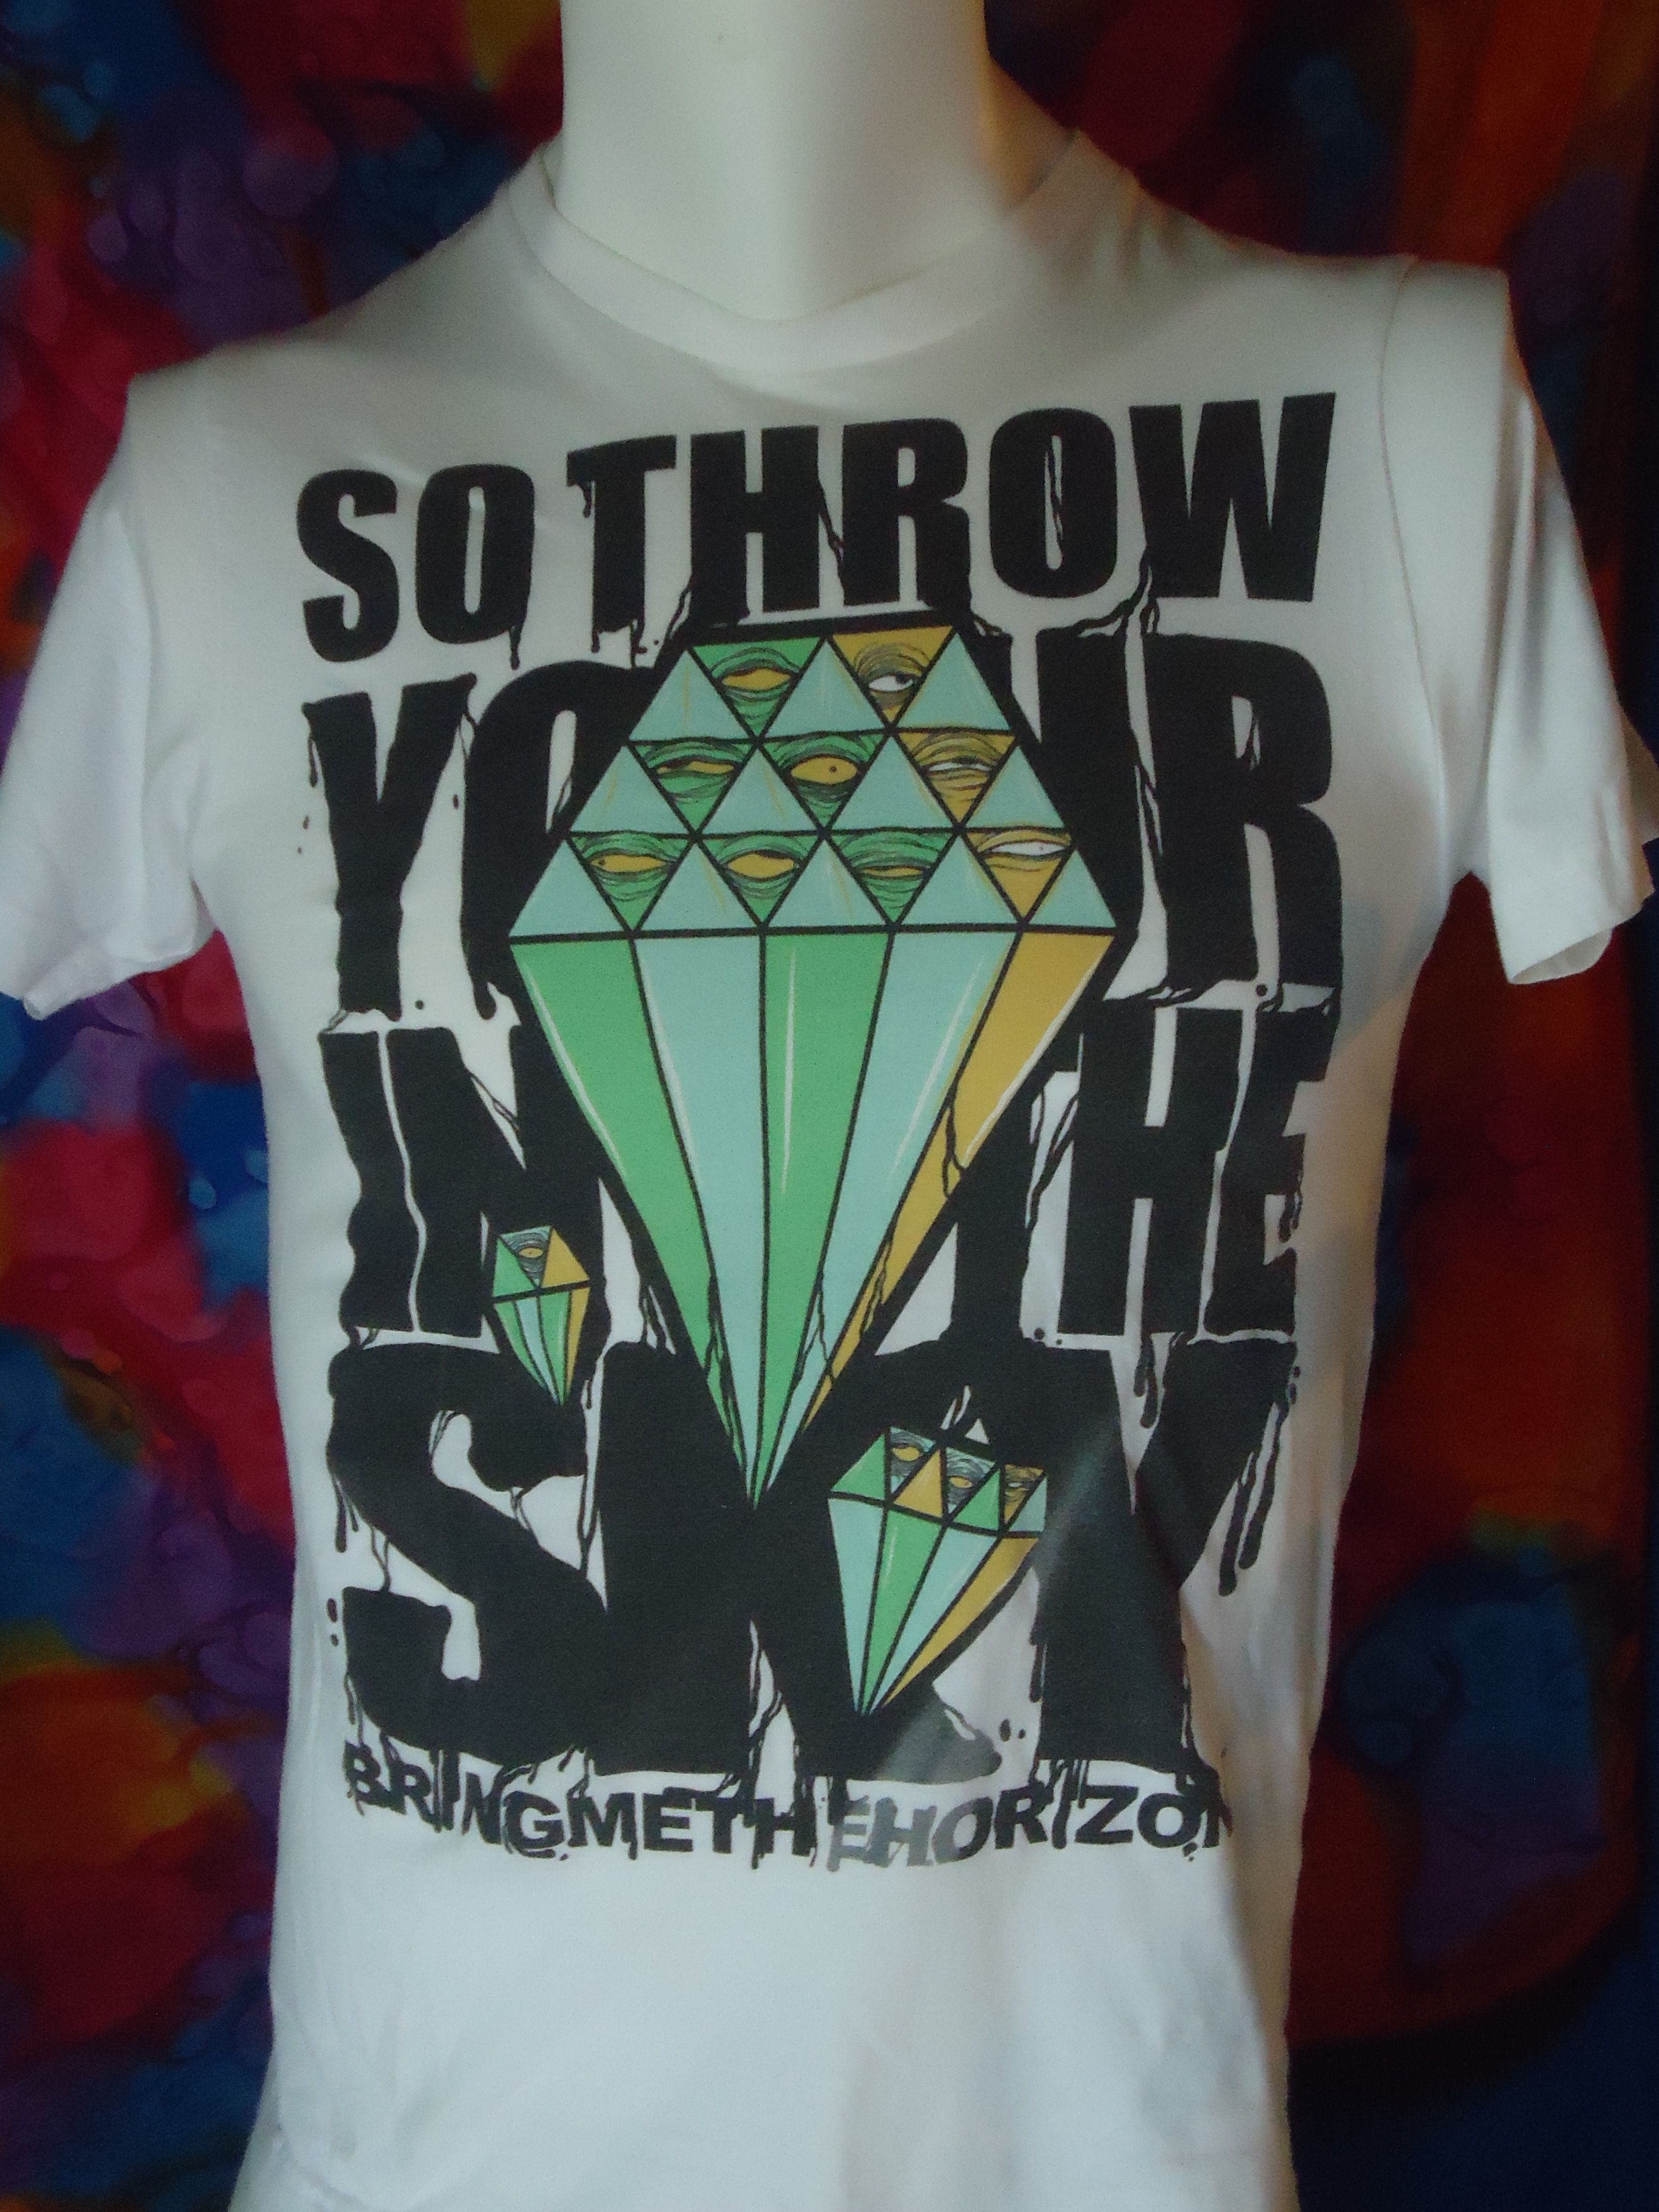 98ce981a2 Vintage - Bring Me The Horizon - So Throw Your Diamonds In The Sky - T-shirt  - S